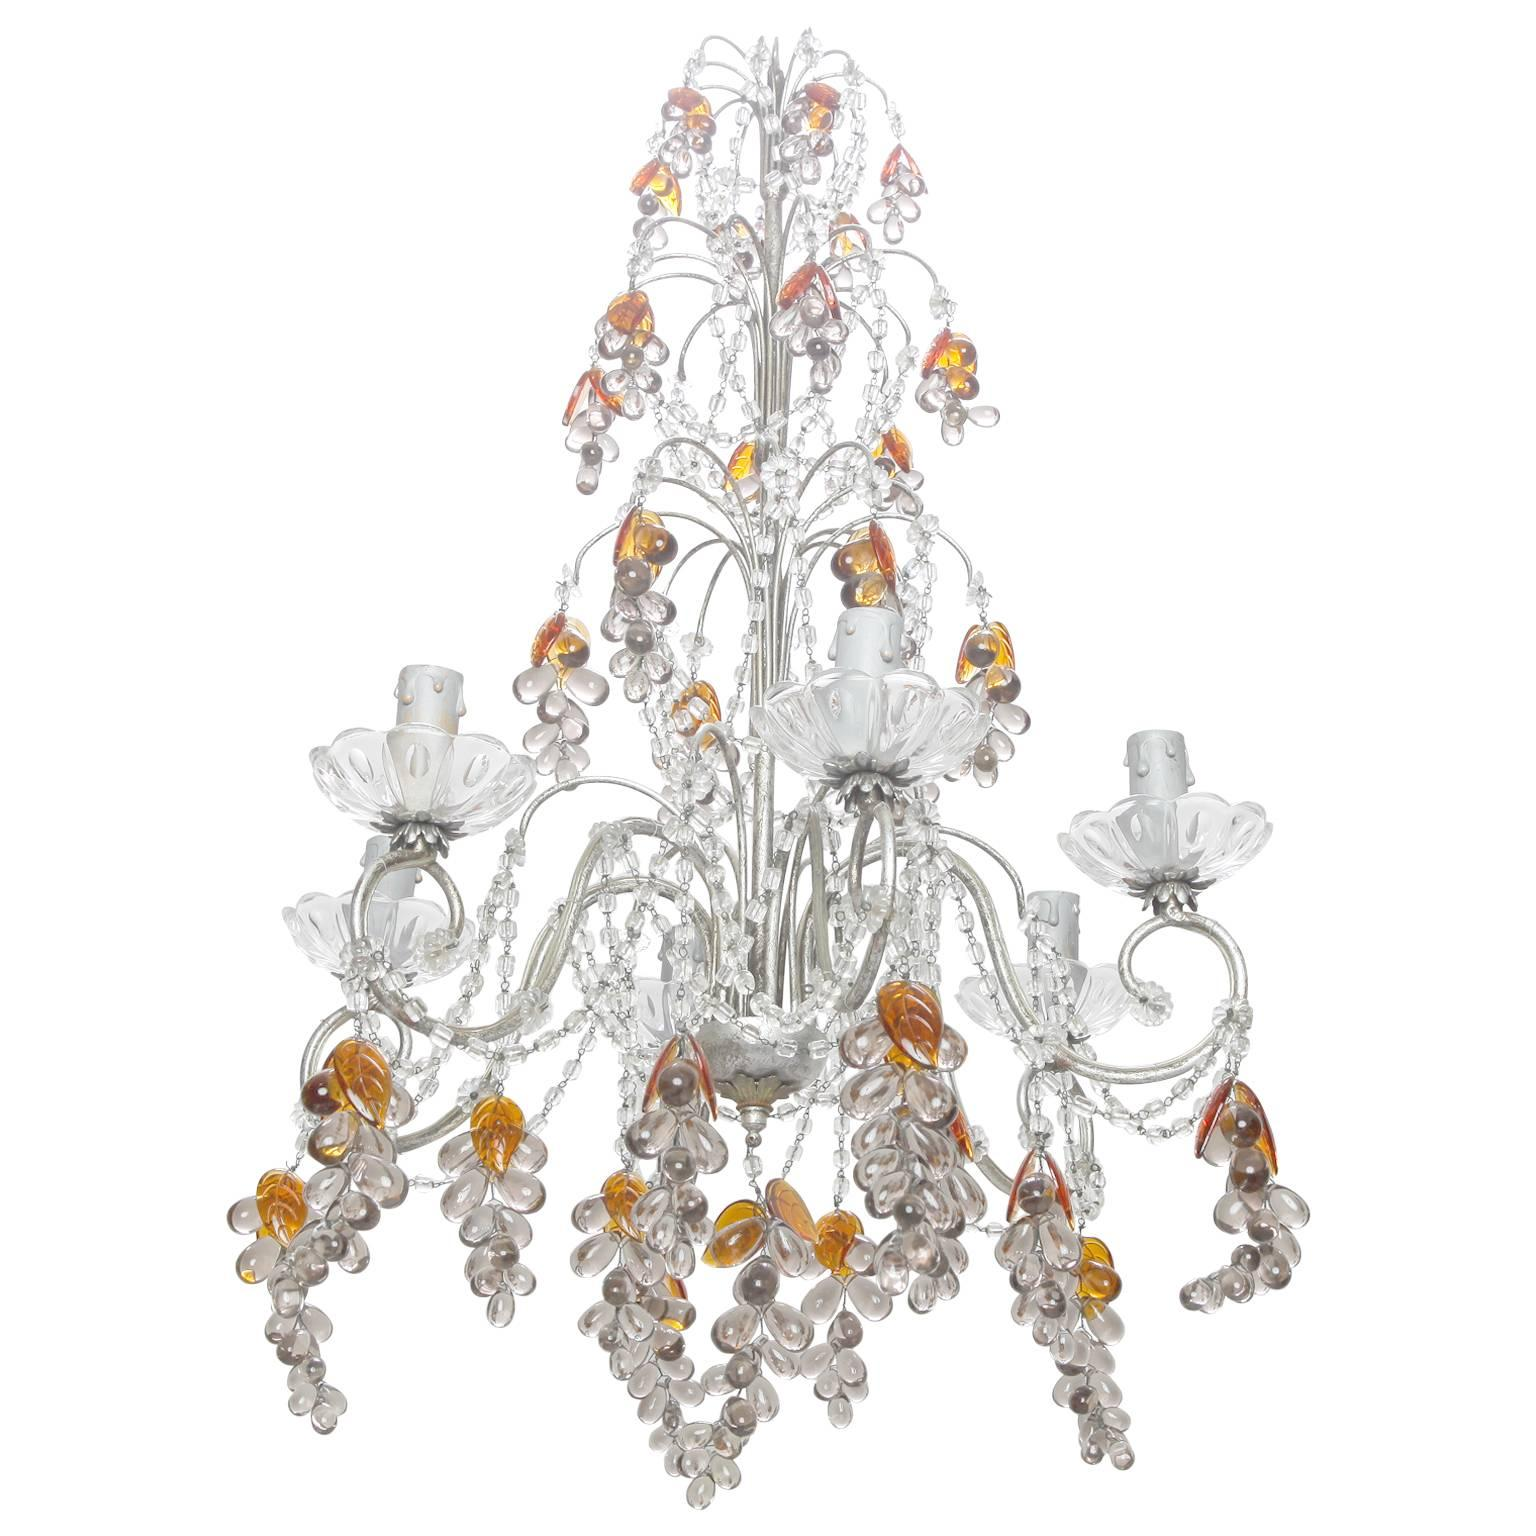 Six-Light Chandelier with Crystal Beads and Glass Grapes